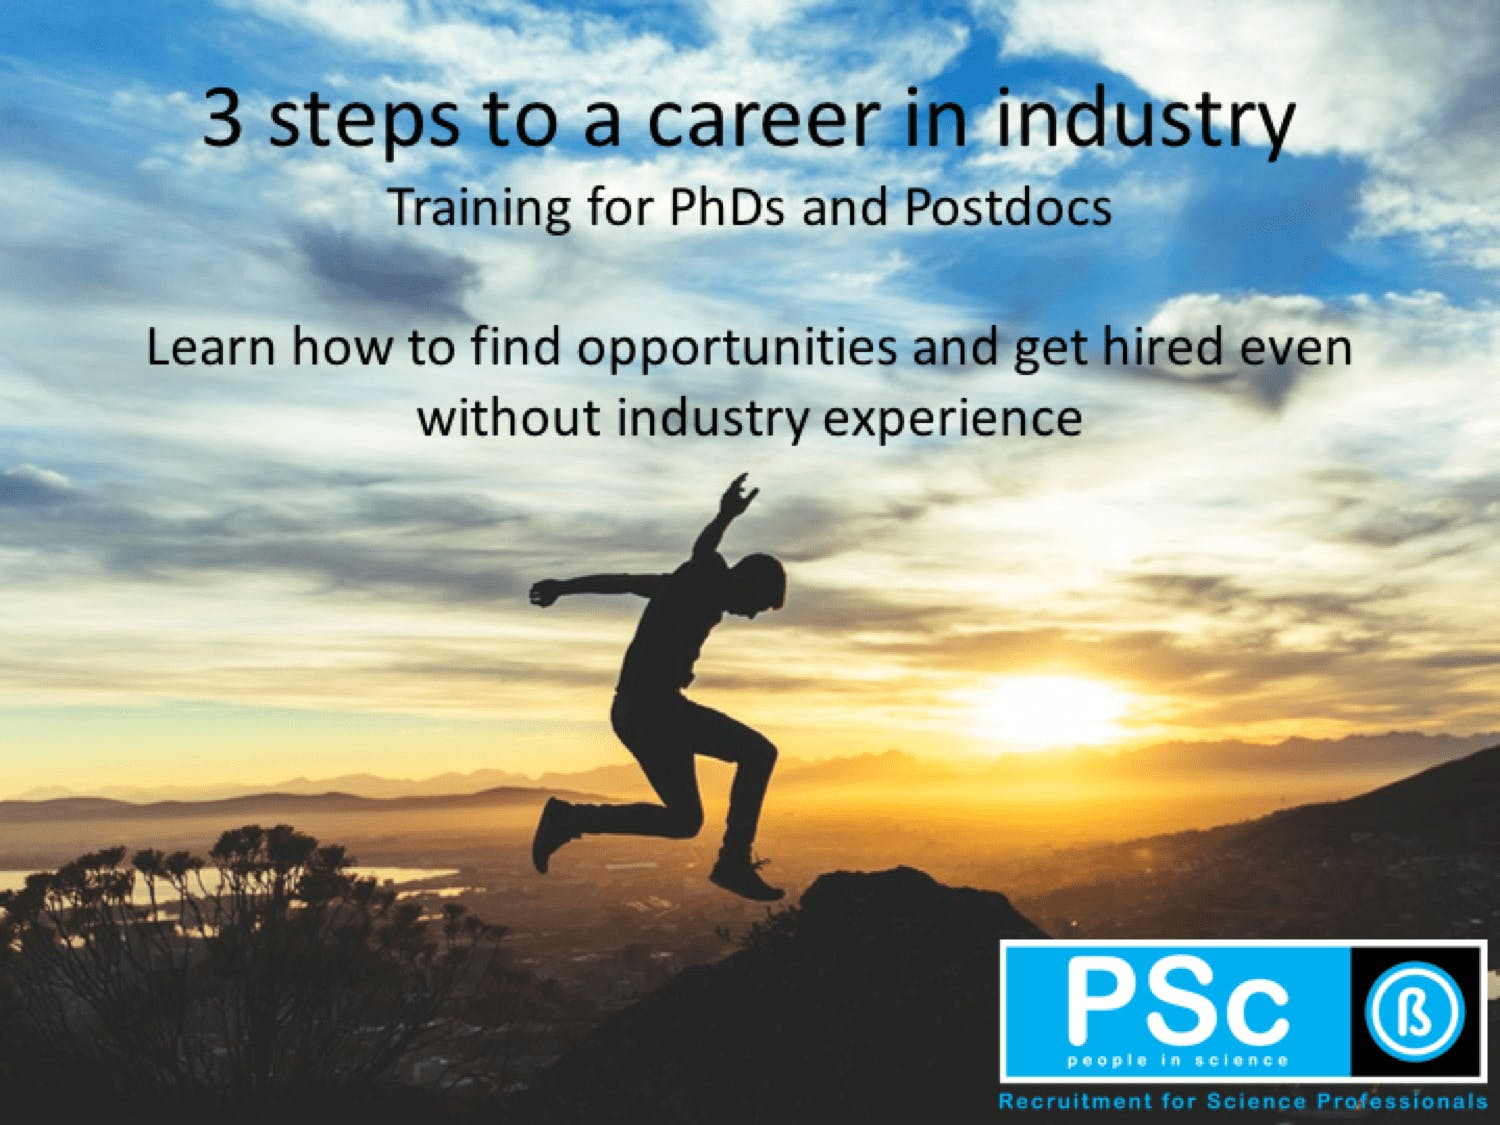 PhD career program 3-steps to a career in industry - Utrecht region